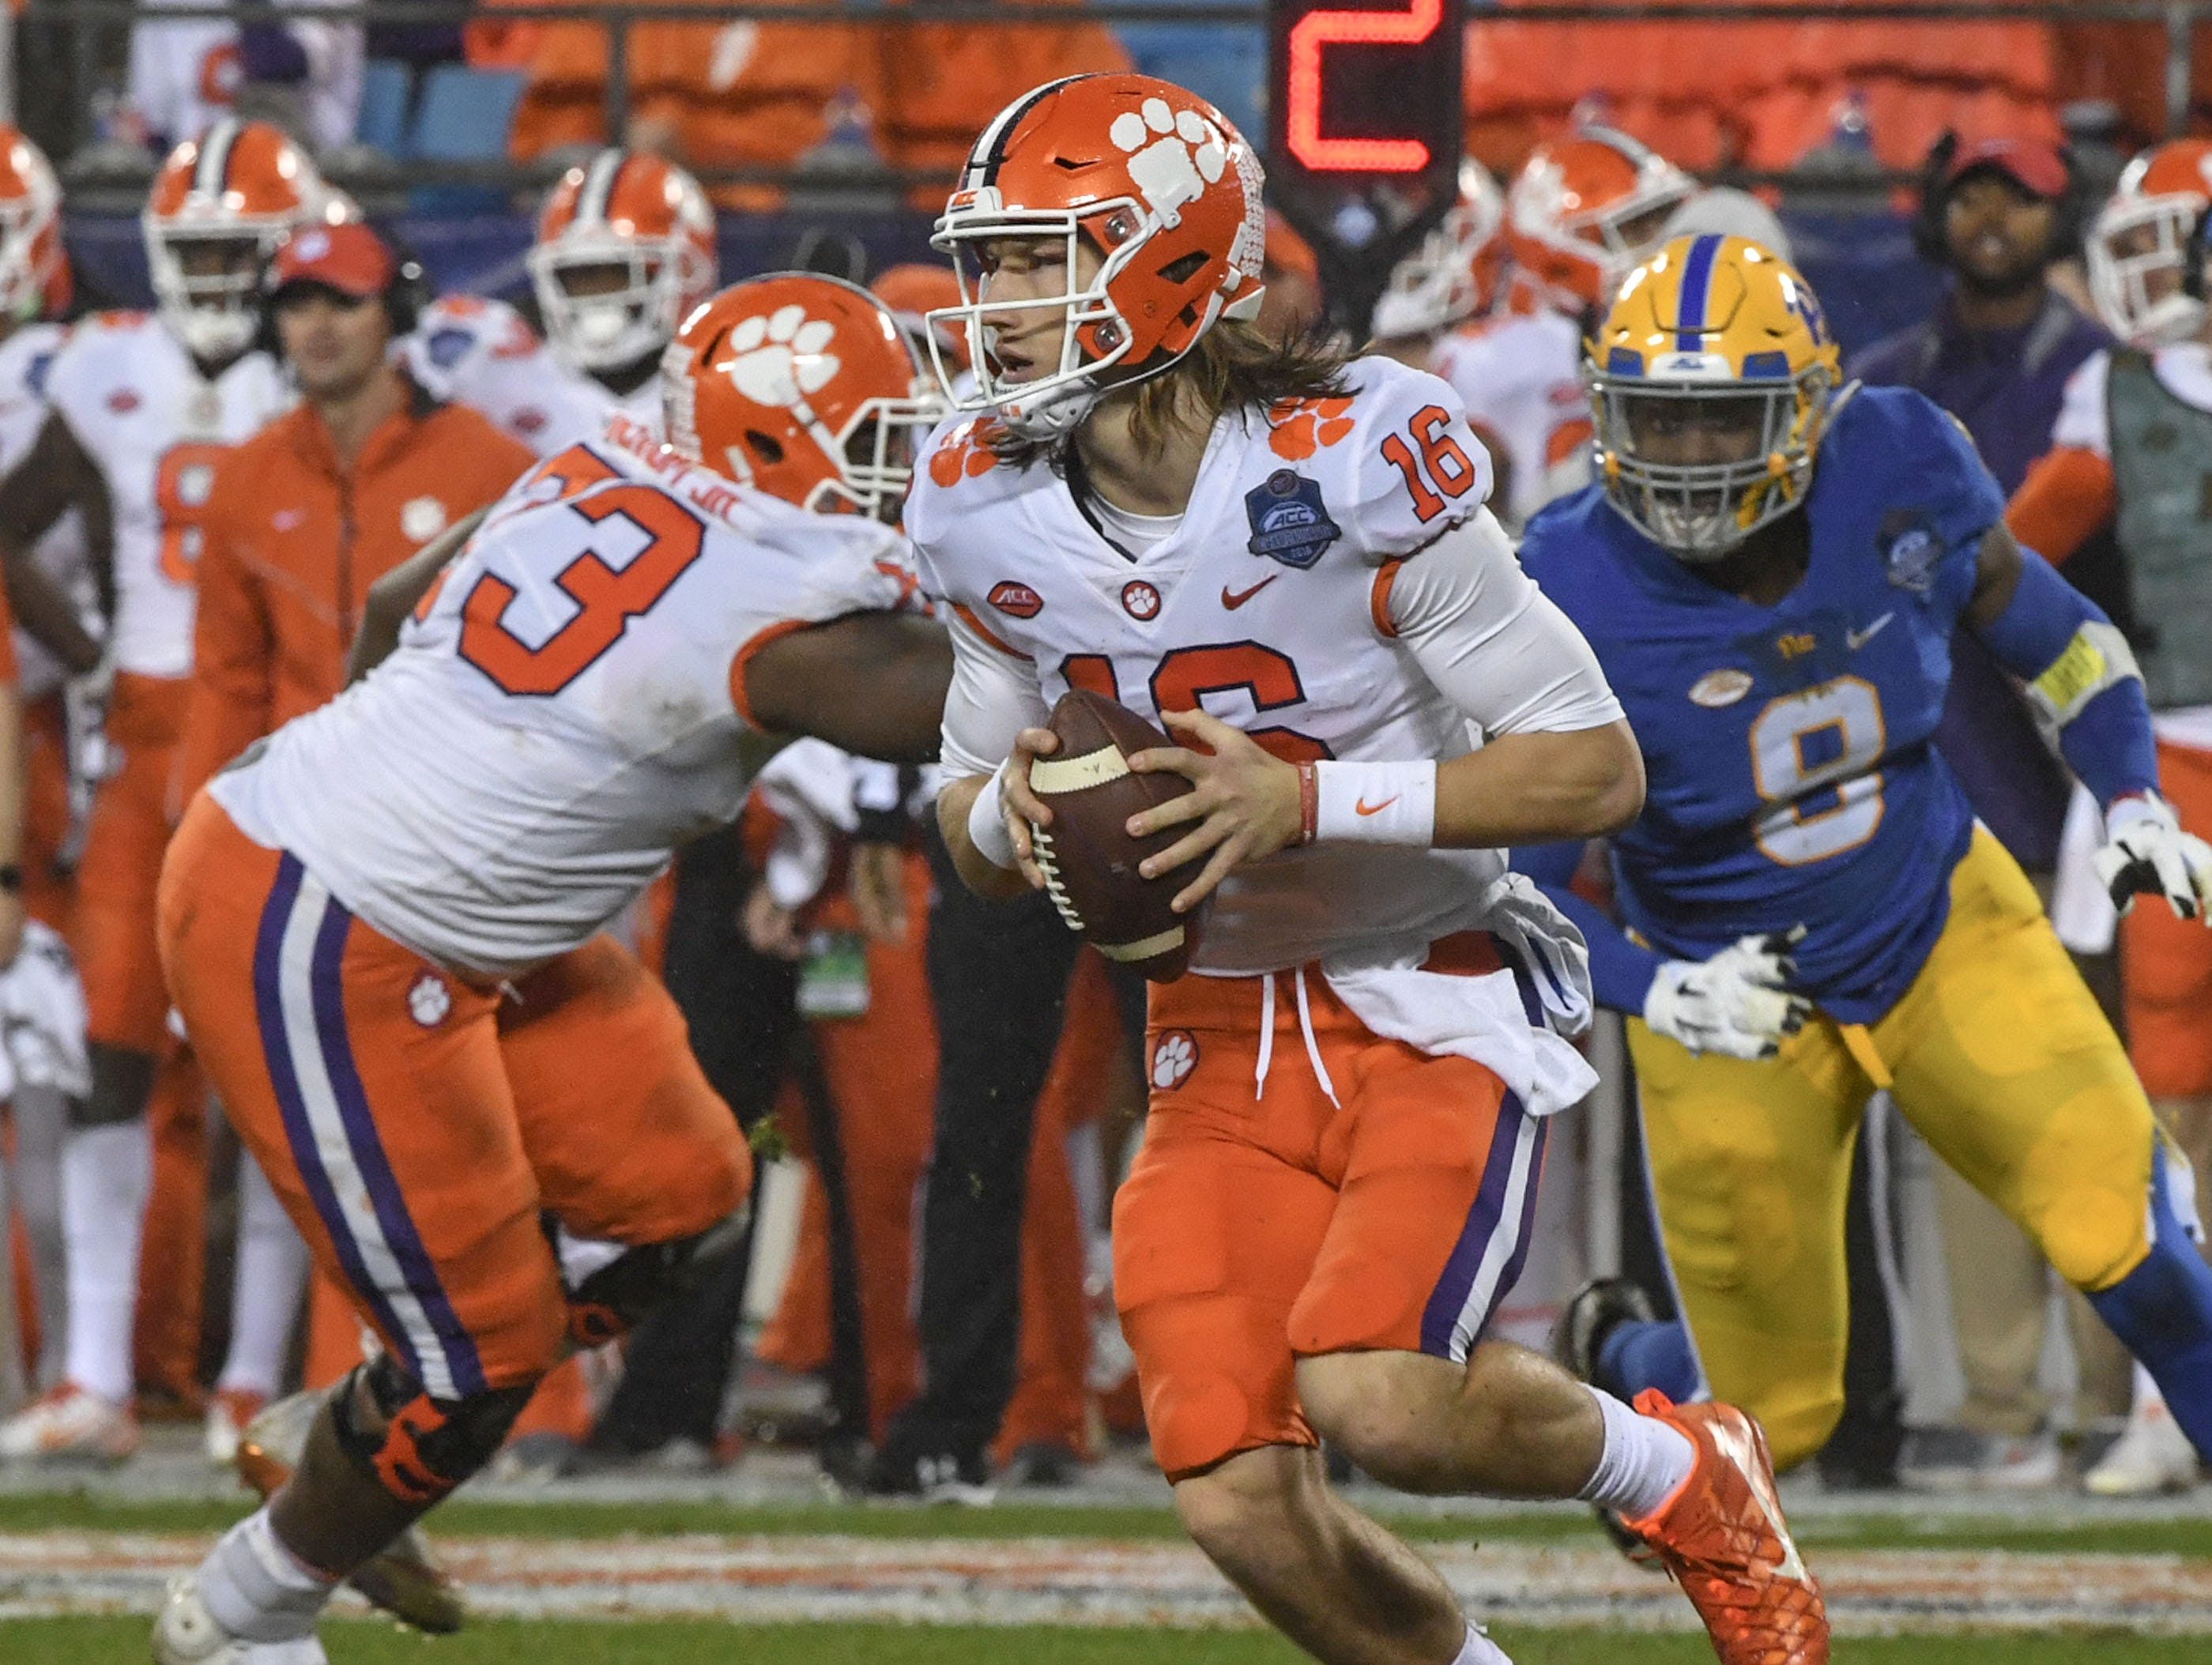 Clemson quarterback Trevor Lawrence (16) rolls out to pass near Pittsburgh linebacker Saleem Brightwell(9) during the second quarter of the Dr. Pepper ACC football championship at Bank of America Stadium in Charlotte, N.C. on Saturday, December 1, 2018.